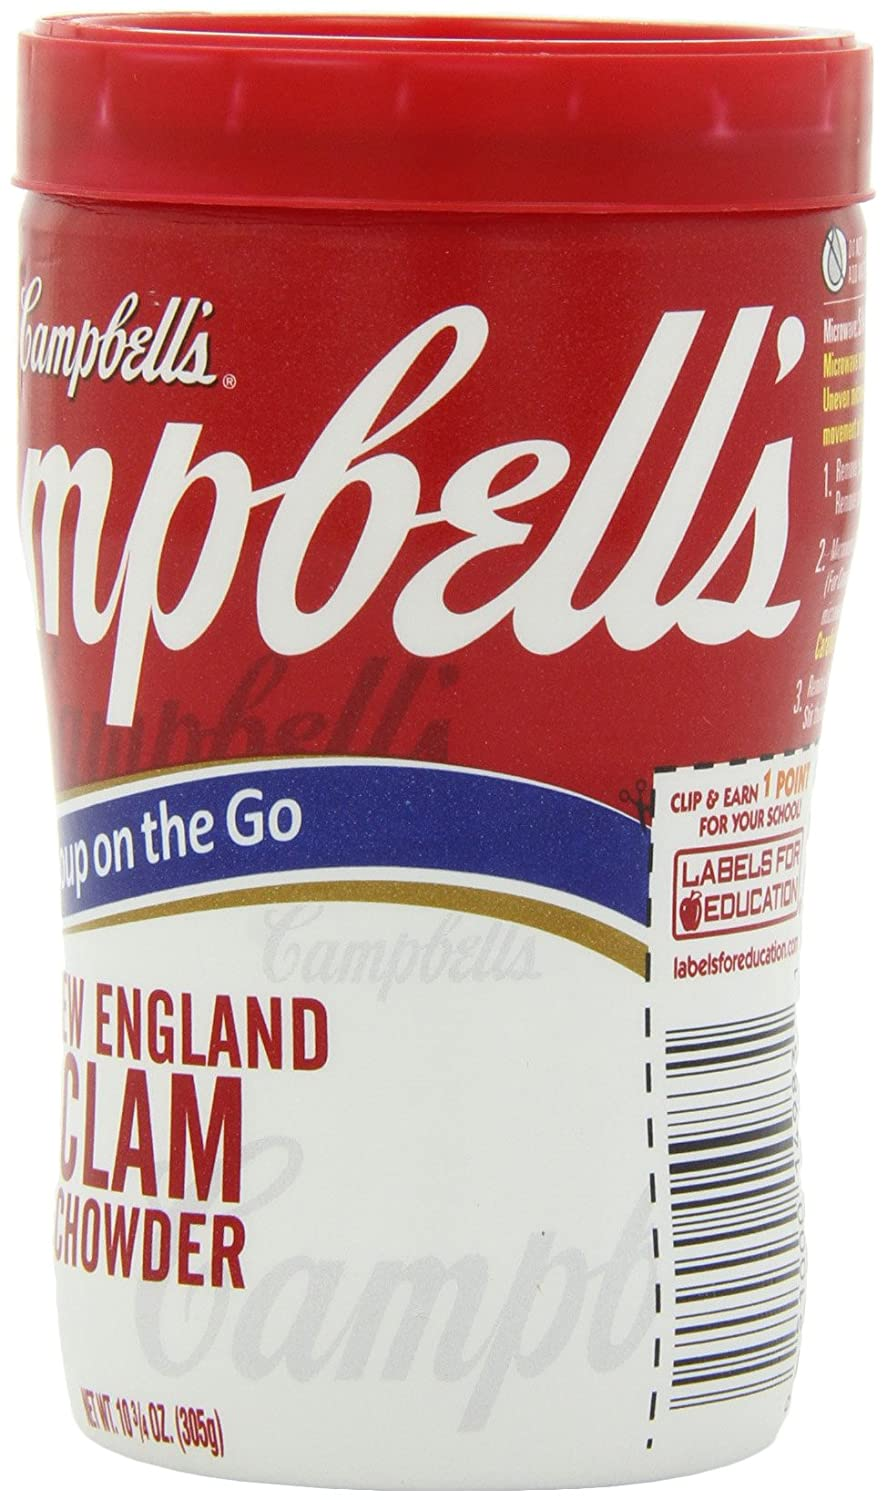 Amazoncom Campbells New England Clam Chowder Soup on the Go